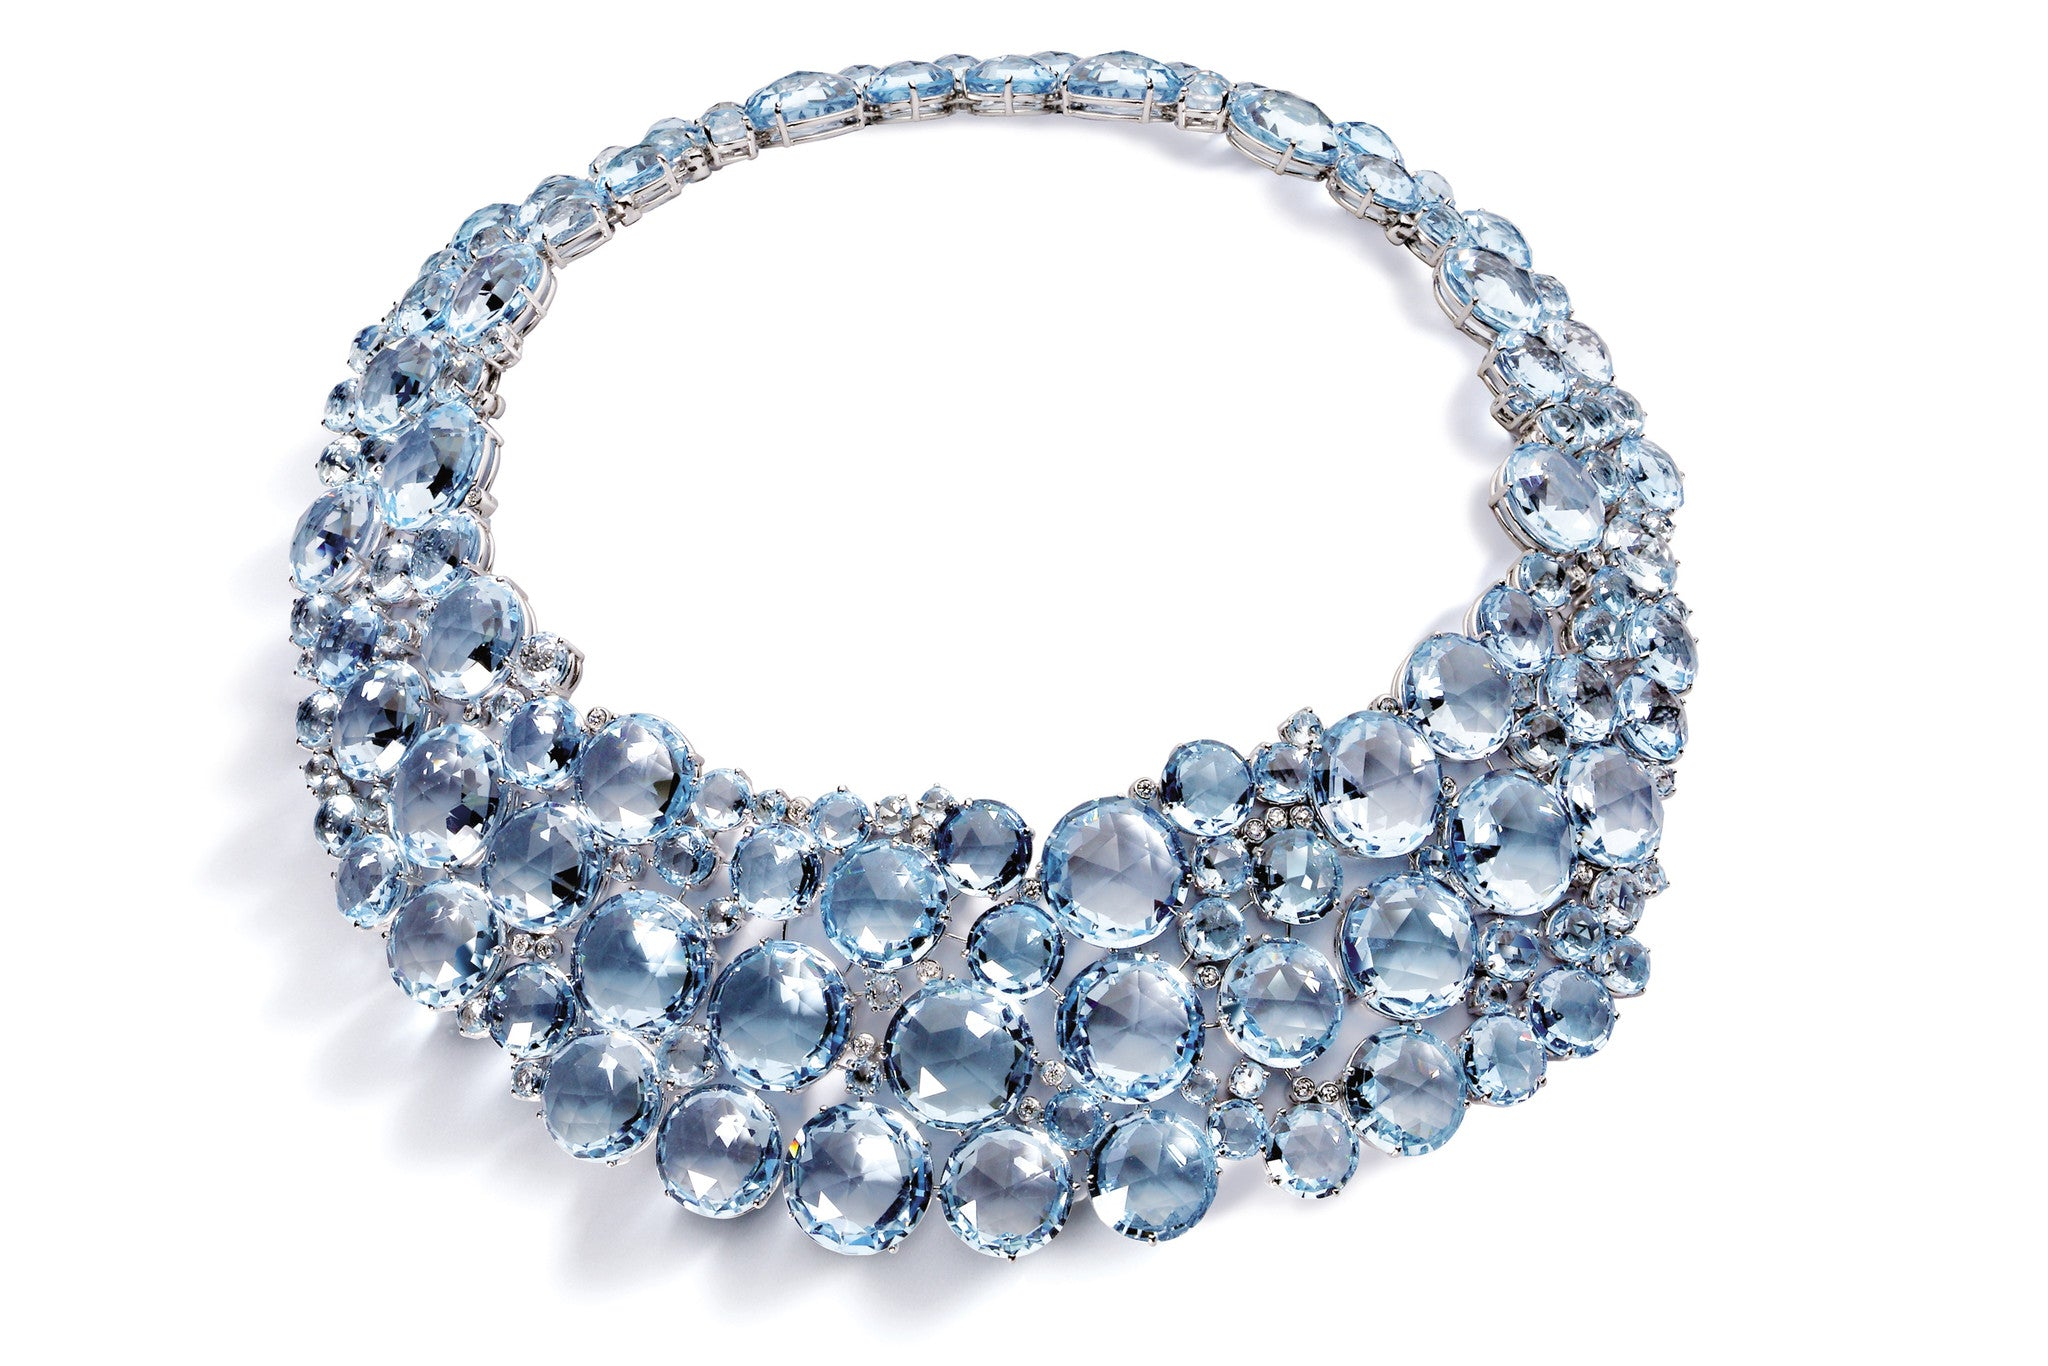 A-FUST-BOUQUET-BIB-NECKLACE-BLUE-TOPAZ-DIAMONDS-WHITE-GOLD